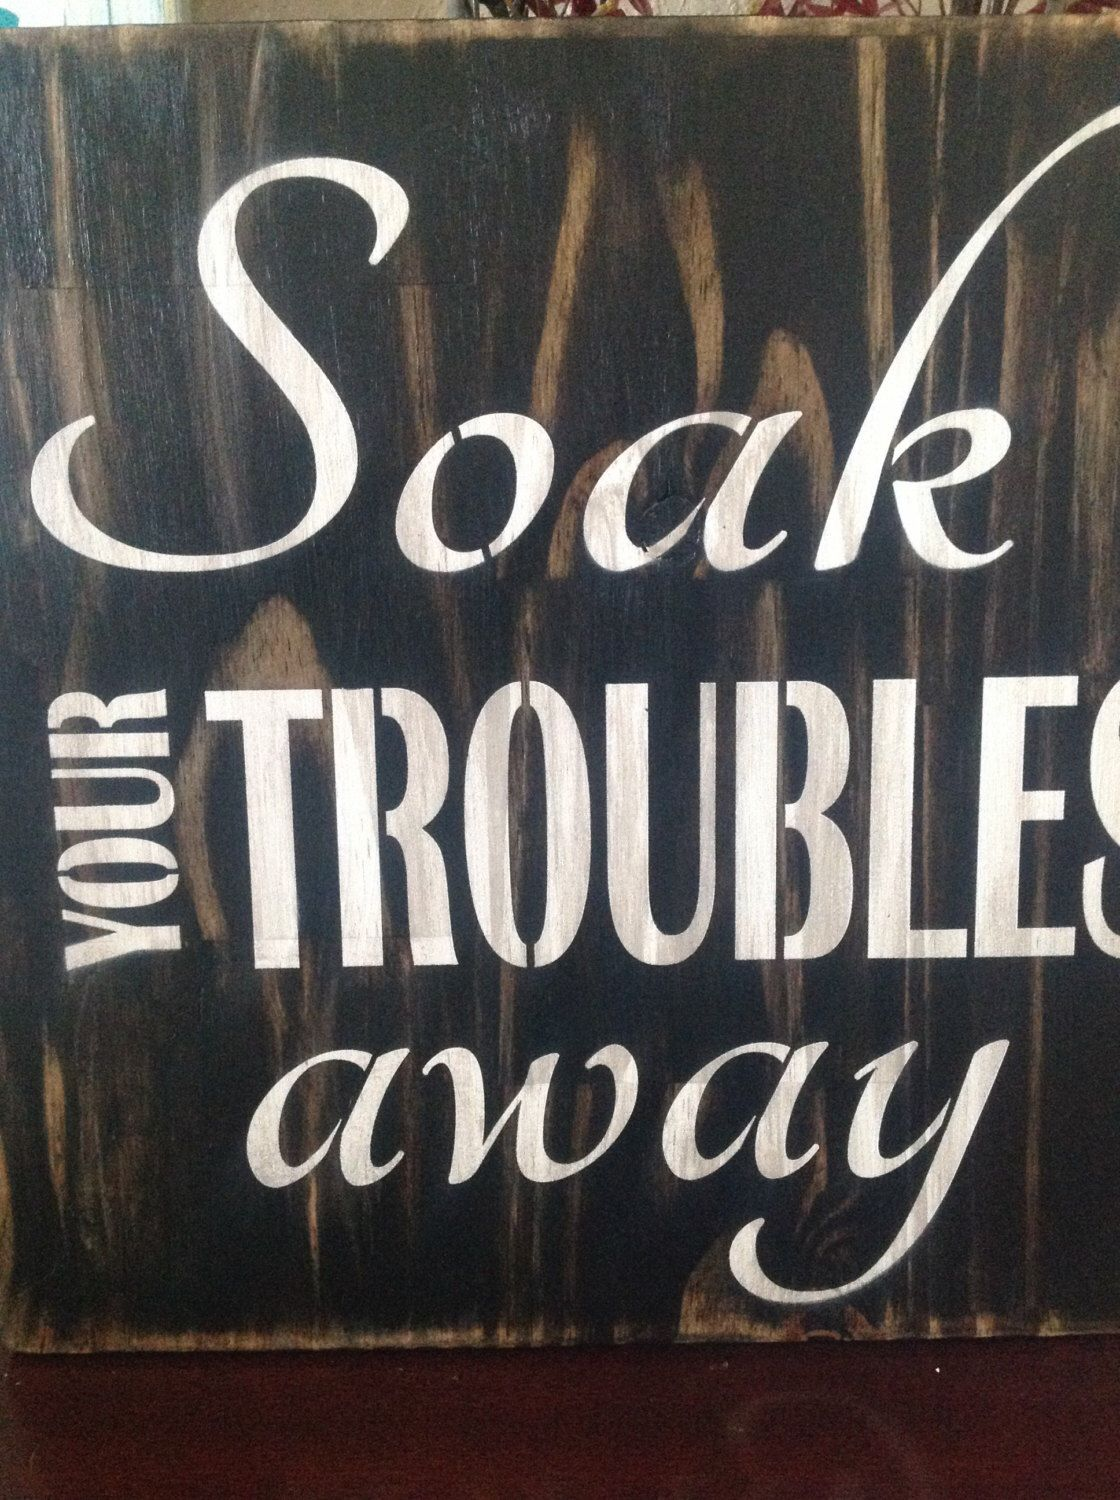 Soak Your Troubles Away Wood Primitive Bathroom Signs Hot Tub Spa Bath Time Wash Wall Decor Gift Ideas By Djantle On Etsy